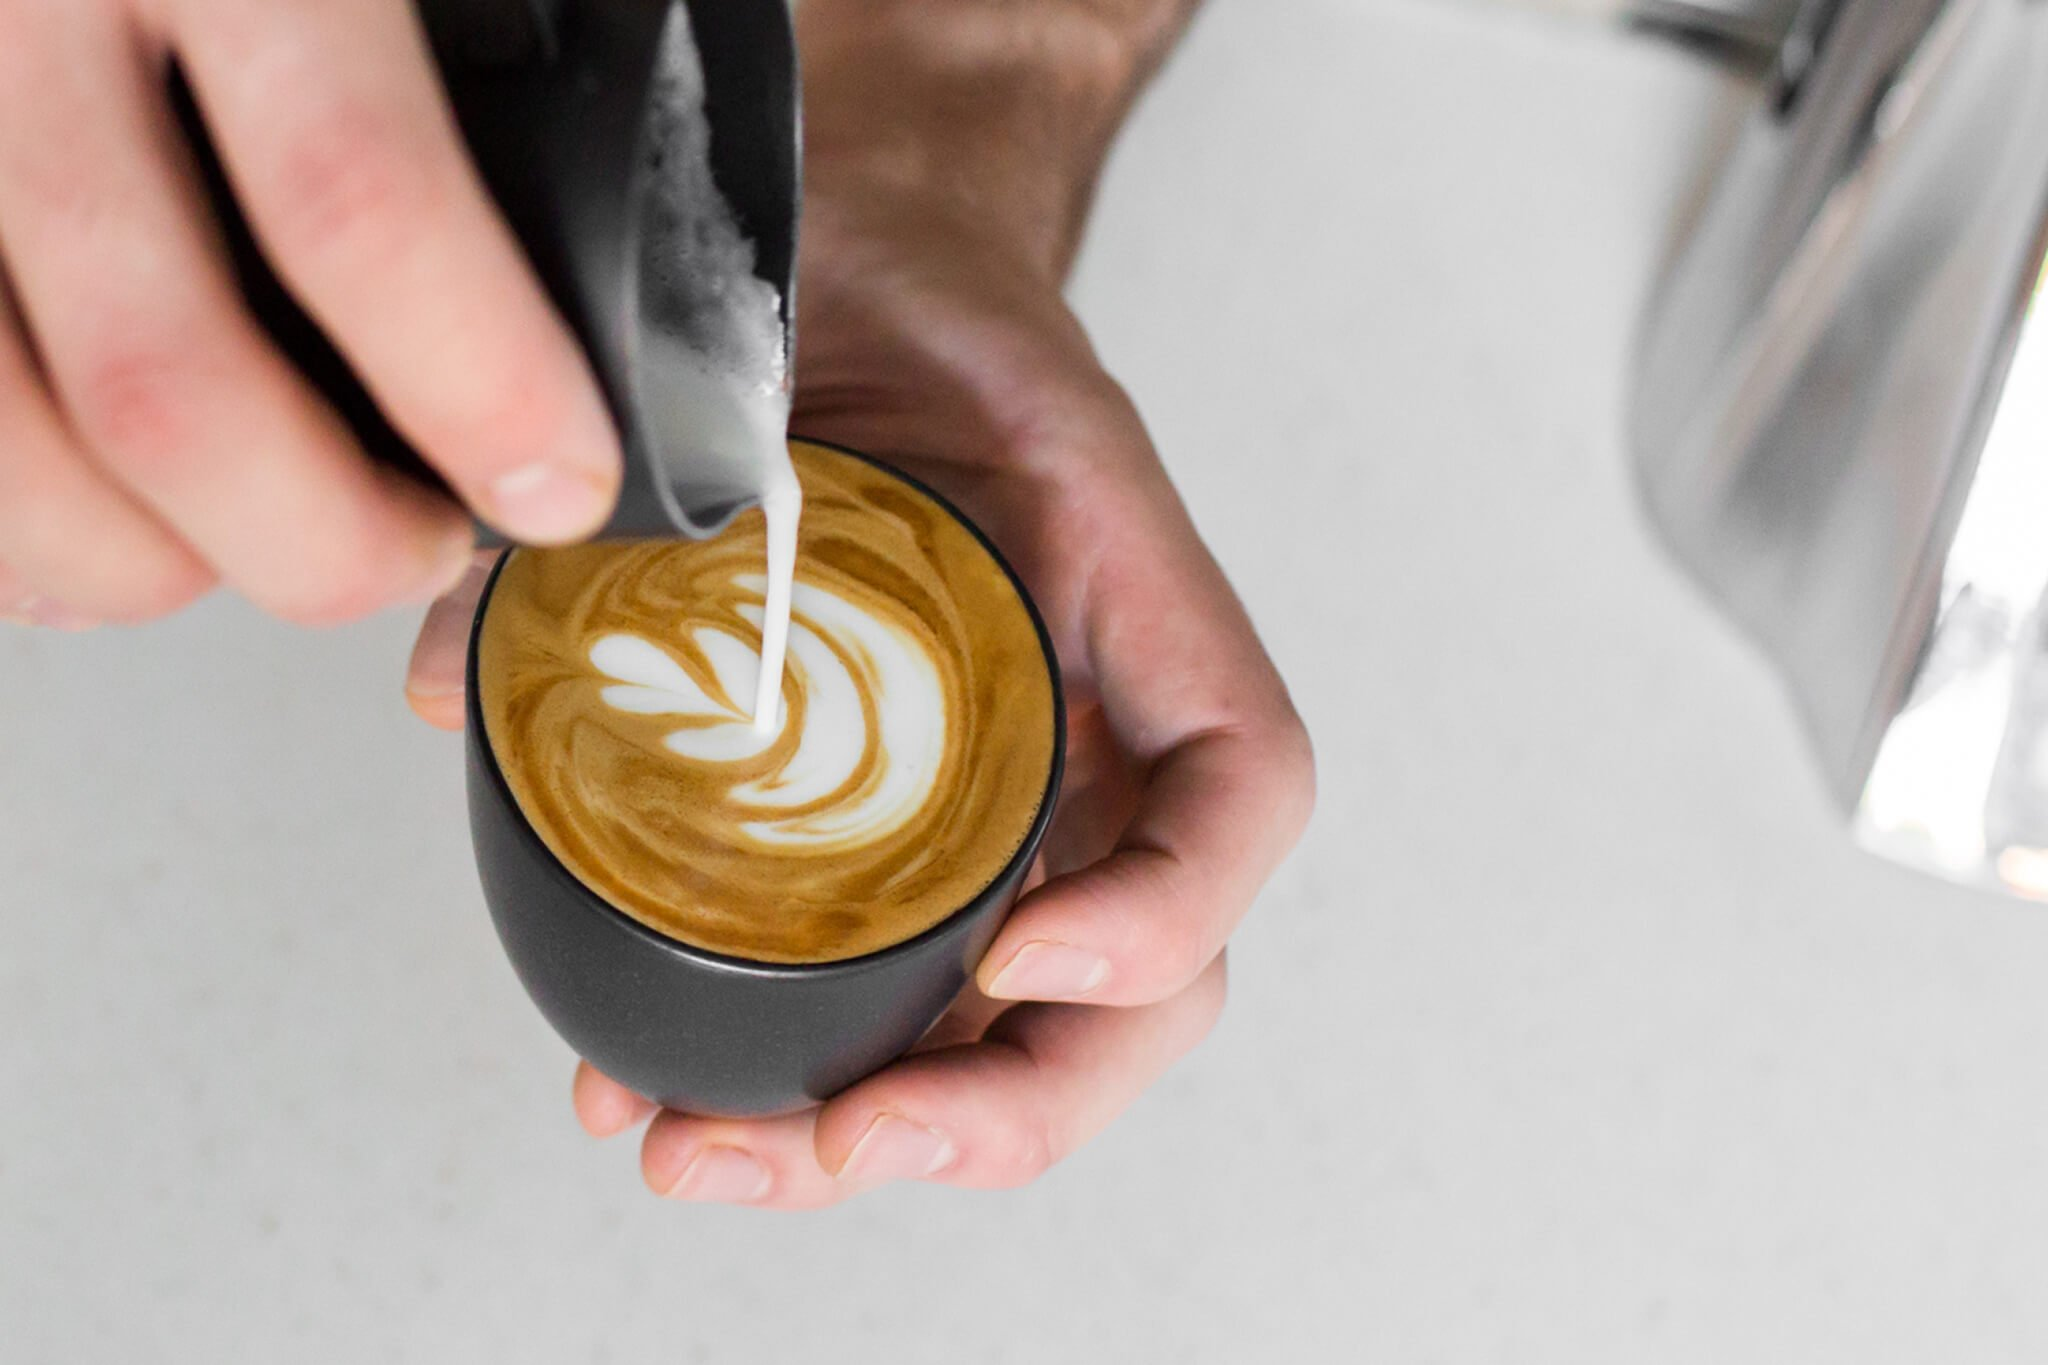 Latte art being poured into a cup